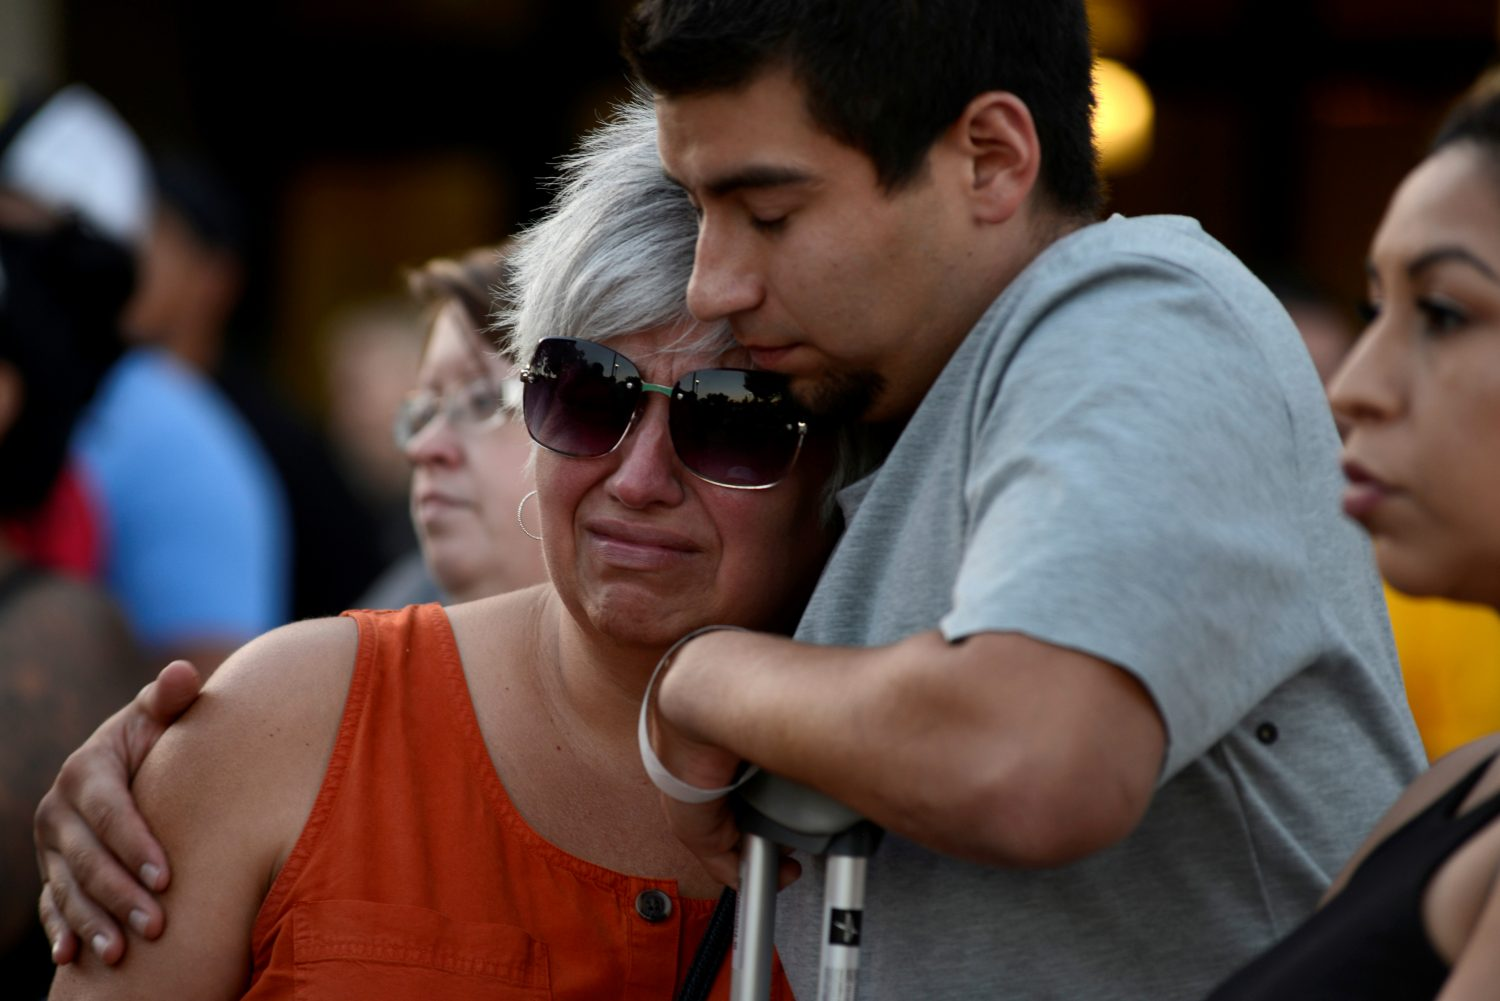 Justin Bates, a survivor of the Gilroy Garlic Festival mass shooting, and his mother, Lisa Barth, attend a vigil outside of Gilroy City Hall, in Gilroy, California, U.S. July 29, 2019. REUTERS/Kate Munsch